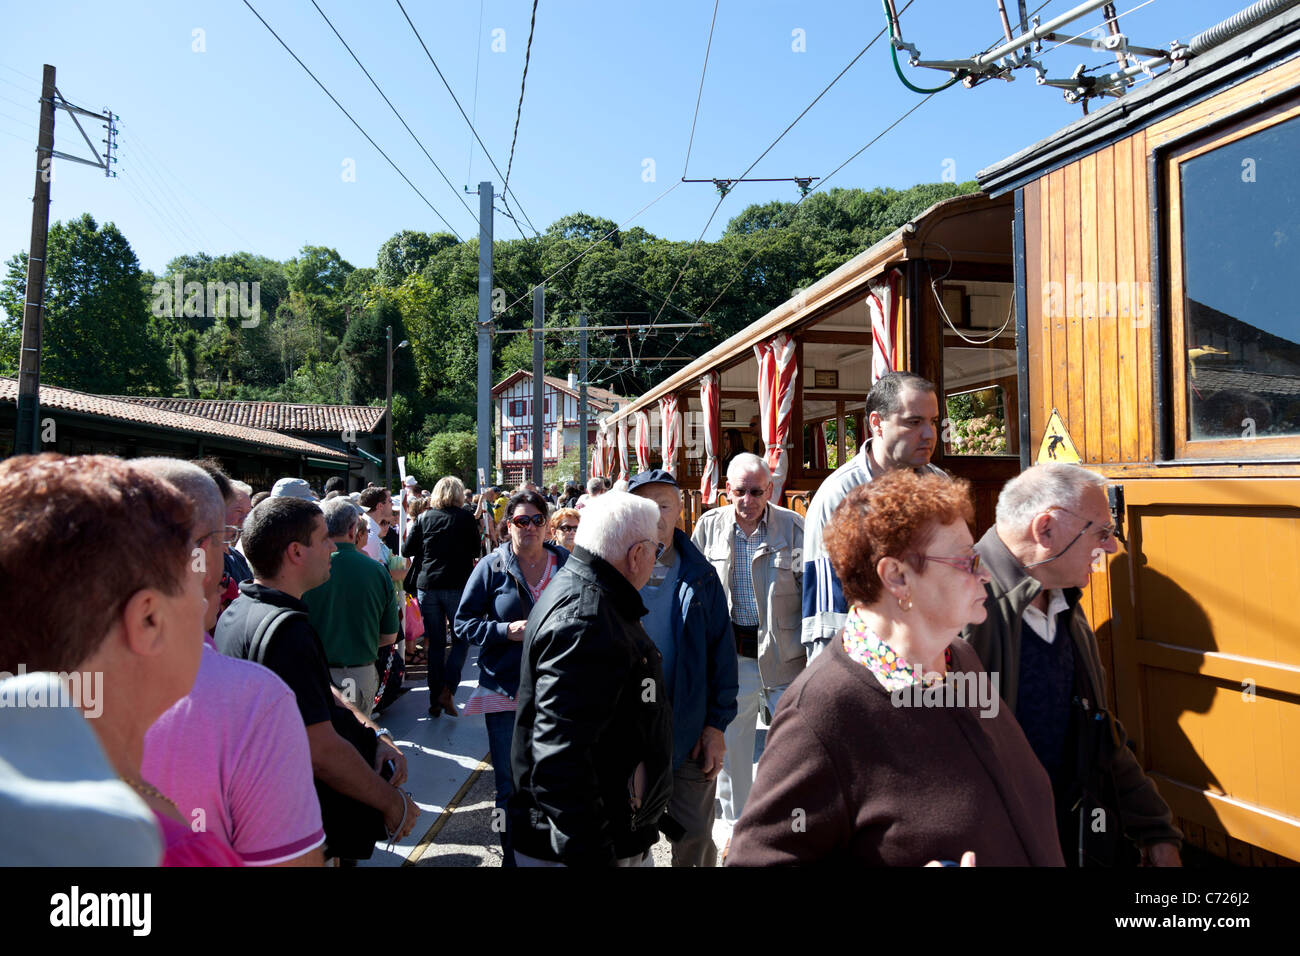 Boarding aboard the Rhune rack railway train (France). Embarquement à bord du train à crémaillère - Stock Image